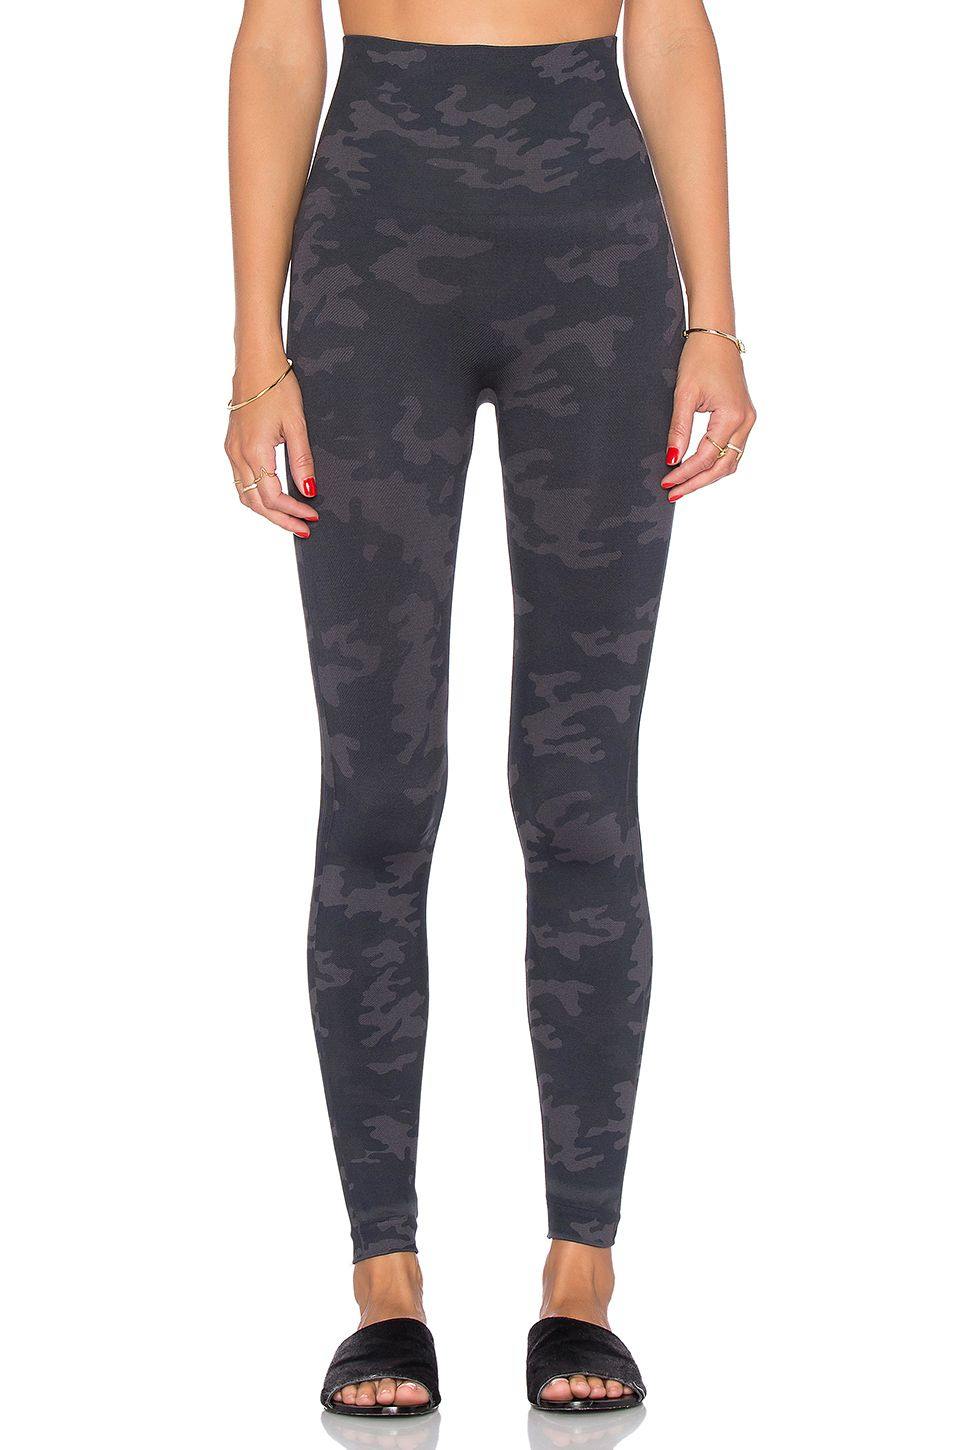 979a55c49 SPANX Look At Me Now Leggings in Black Camo